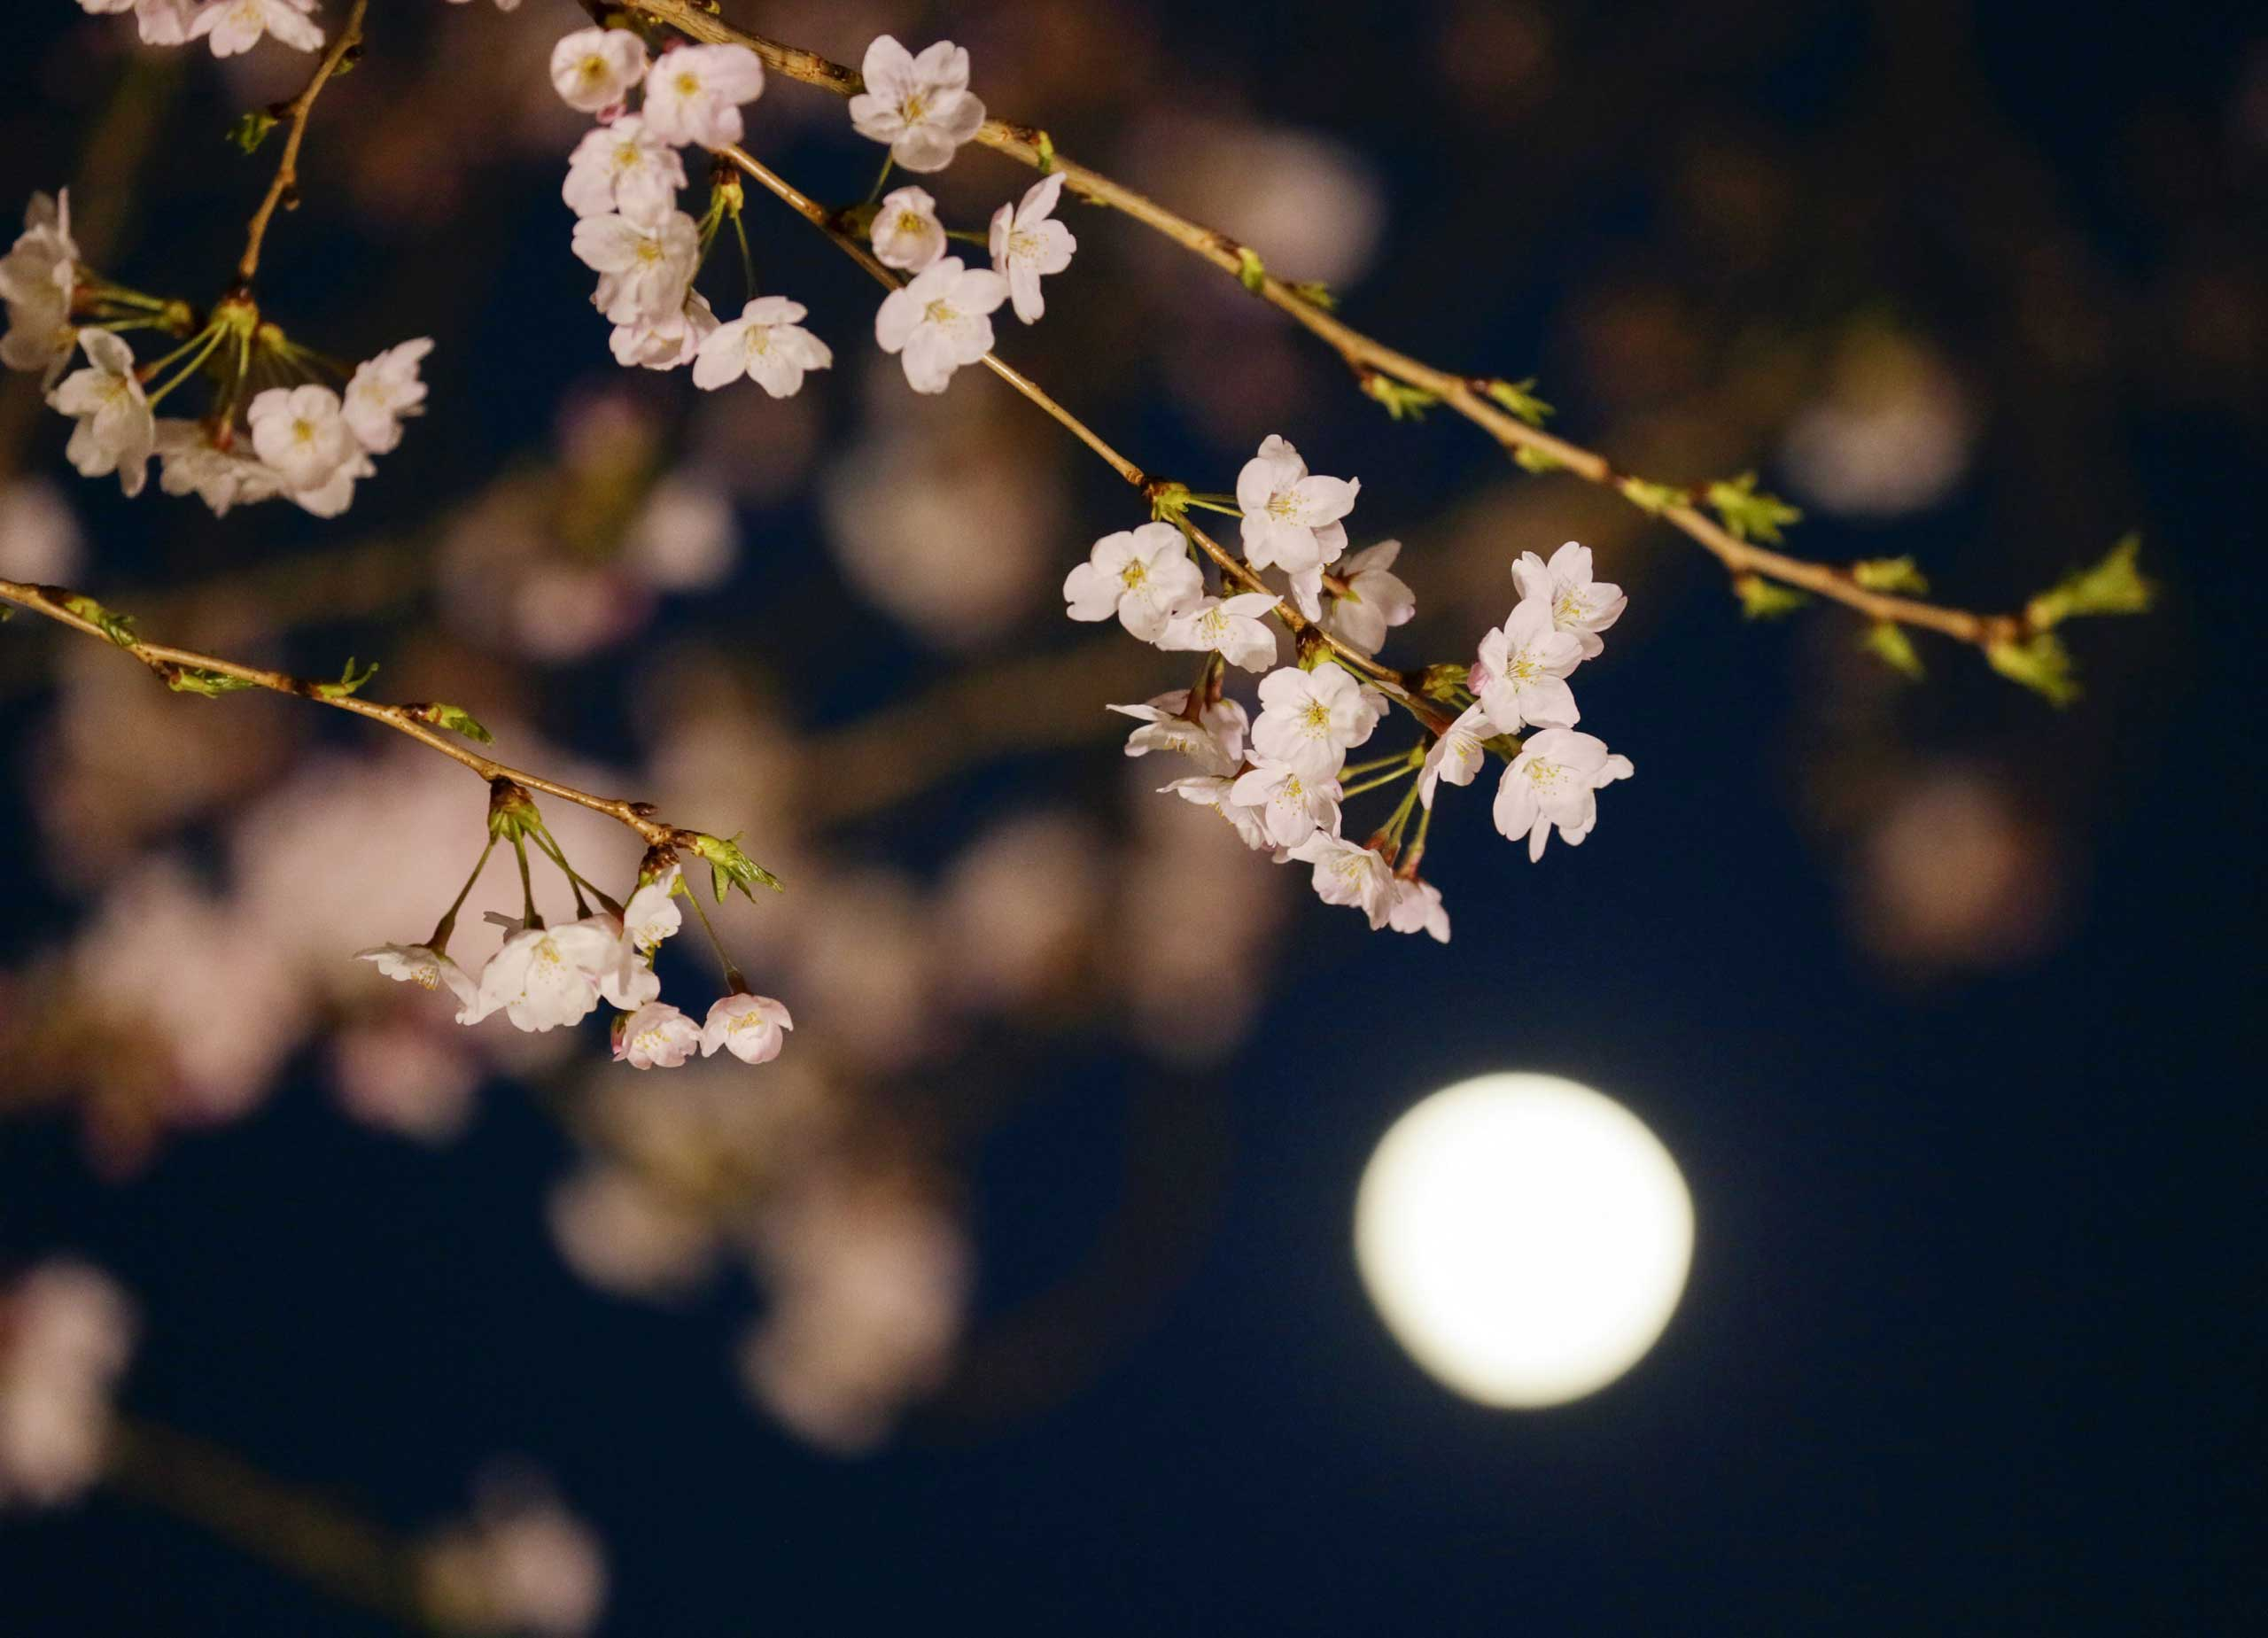 Cherry blossoms in full bloom are seen in the evening in Tokyo, March 30, 2015.